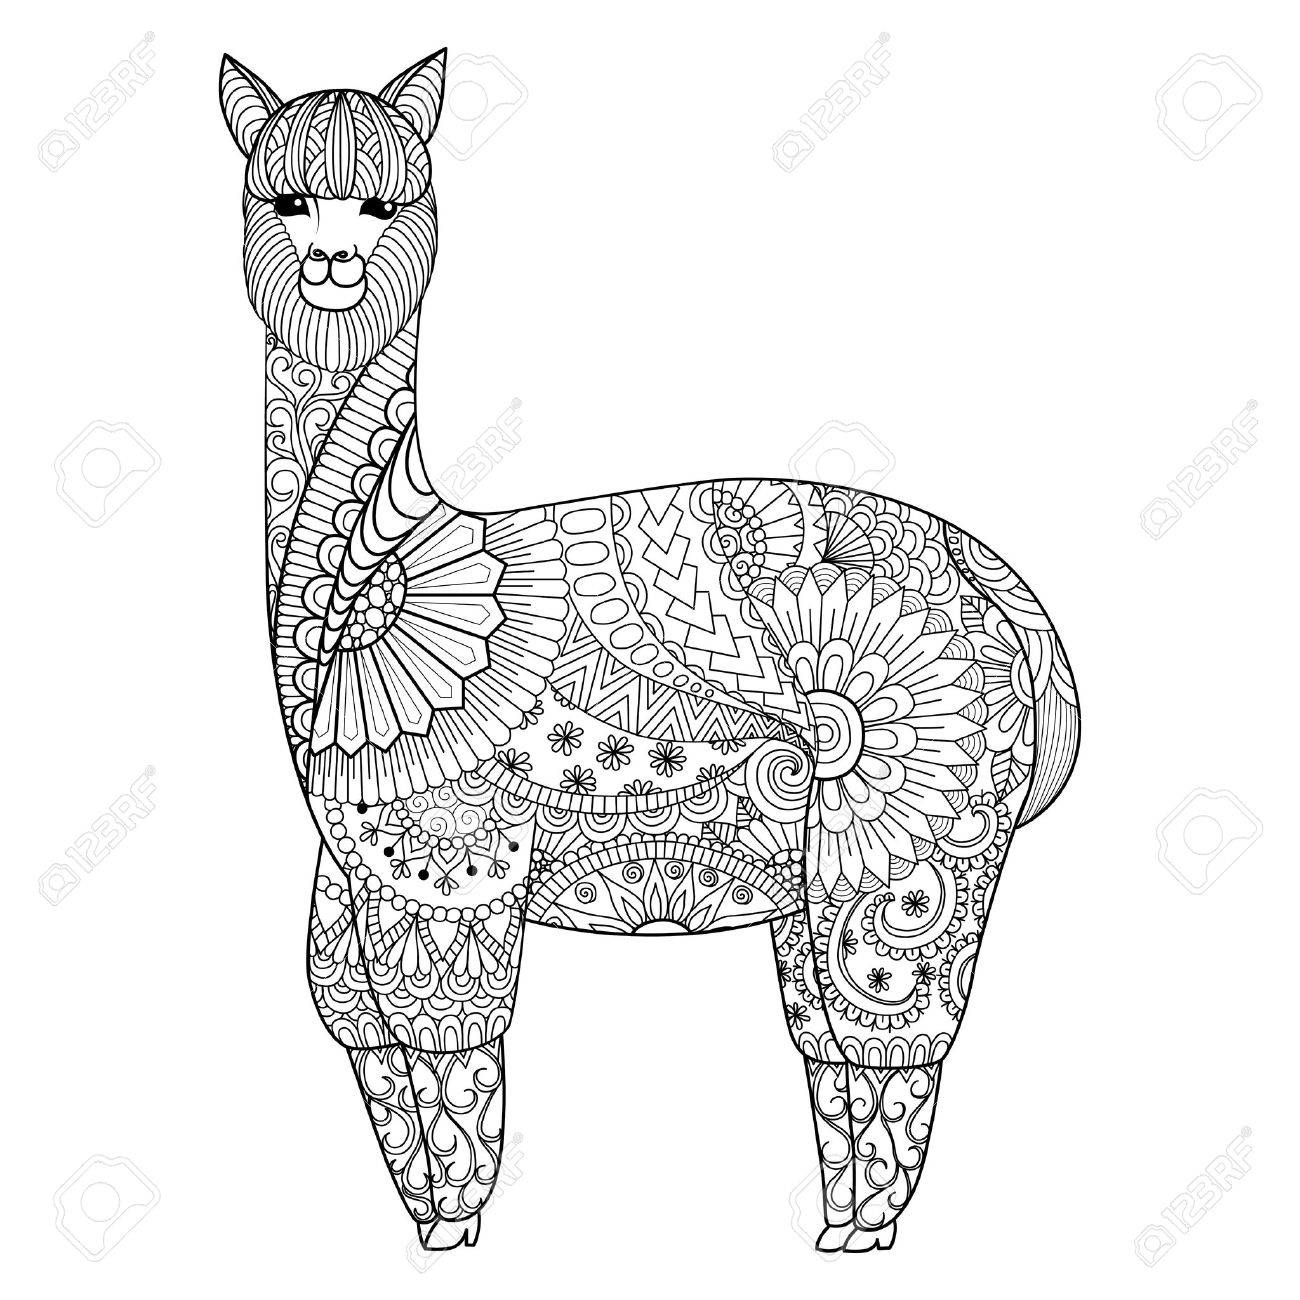 Shirt design book - Alpaca Design For Coloring Book For Adult T Shirt Design And So On Stock Vector